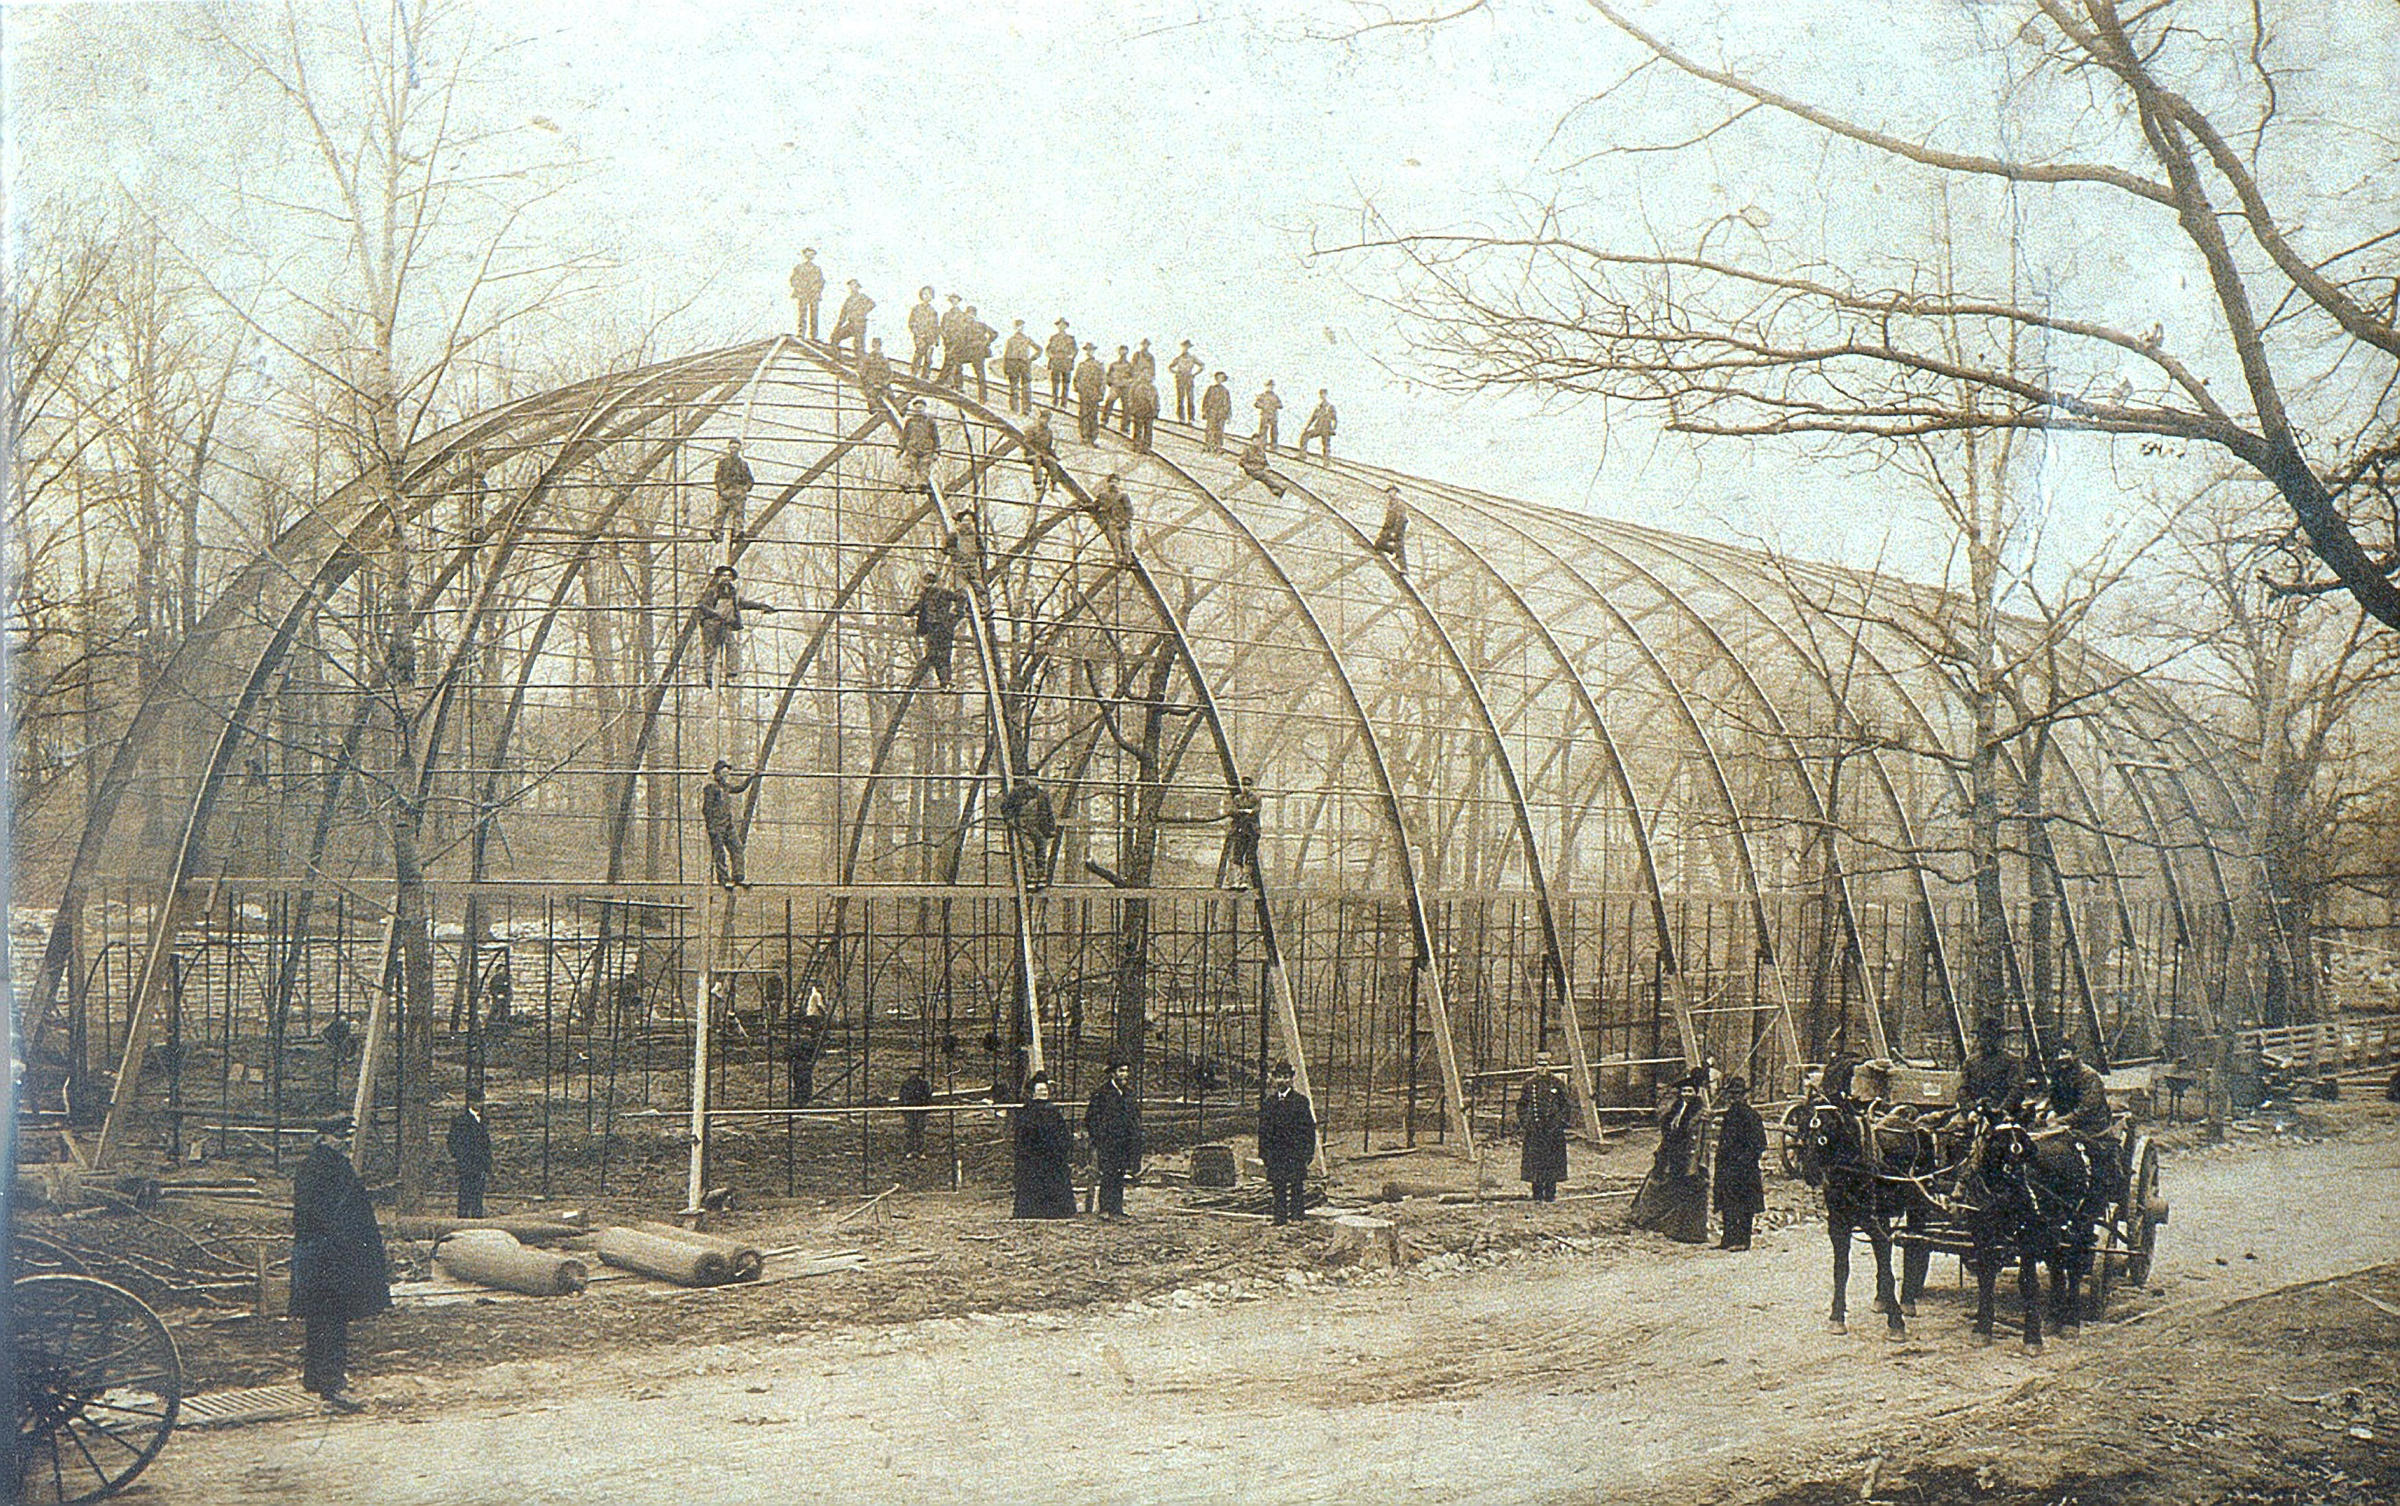 The Big Bird Cage Where The Saint Louis Zoo Took Flight After The